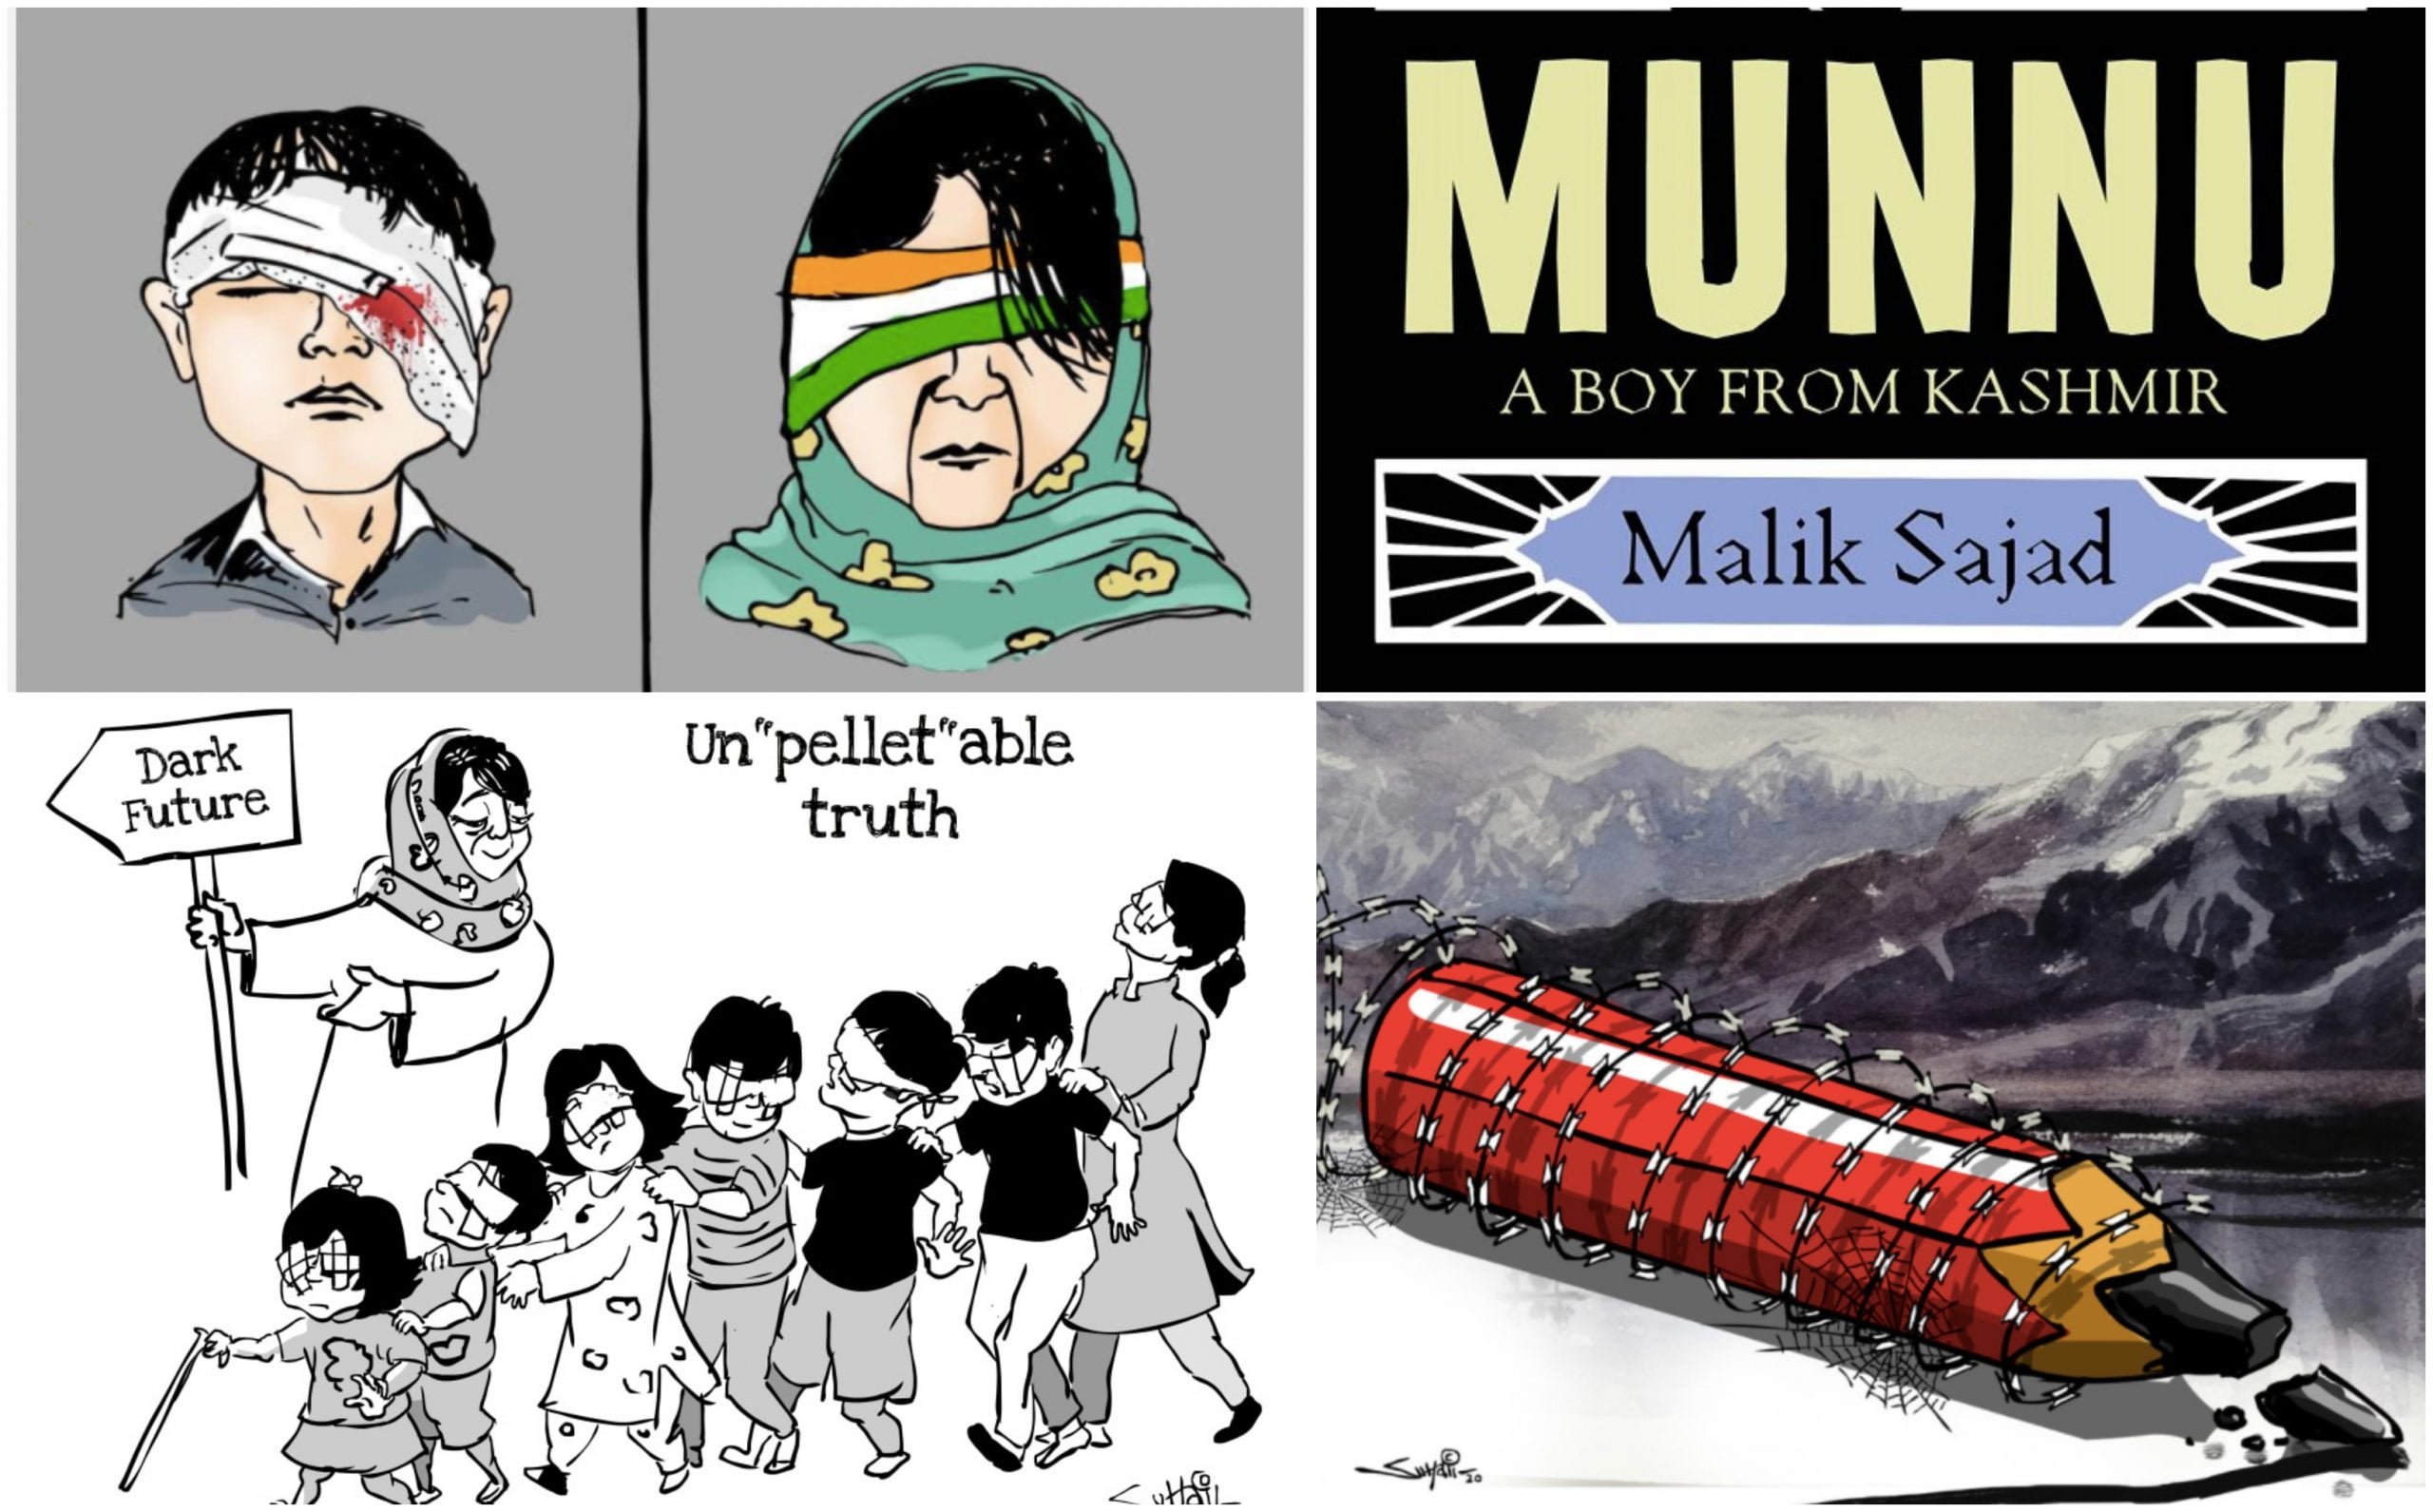 Kashmir's Political Cartoon Culture And The Power That It Symbolises